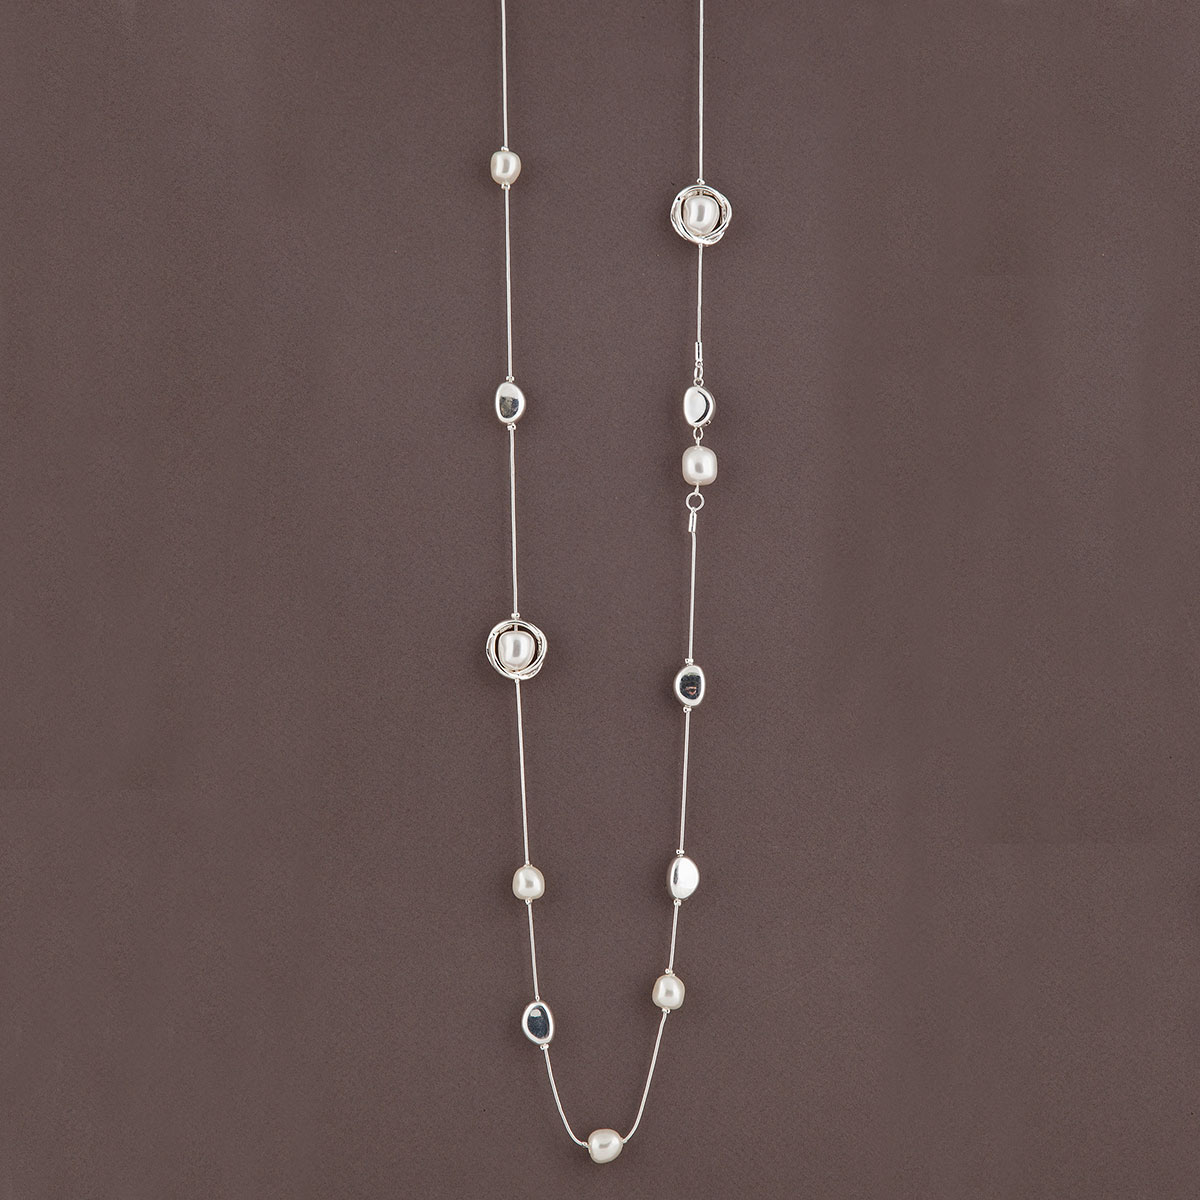 Silver Circles with Pearls on Chain Necklace